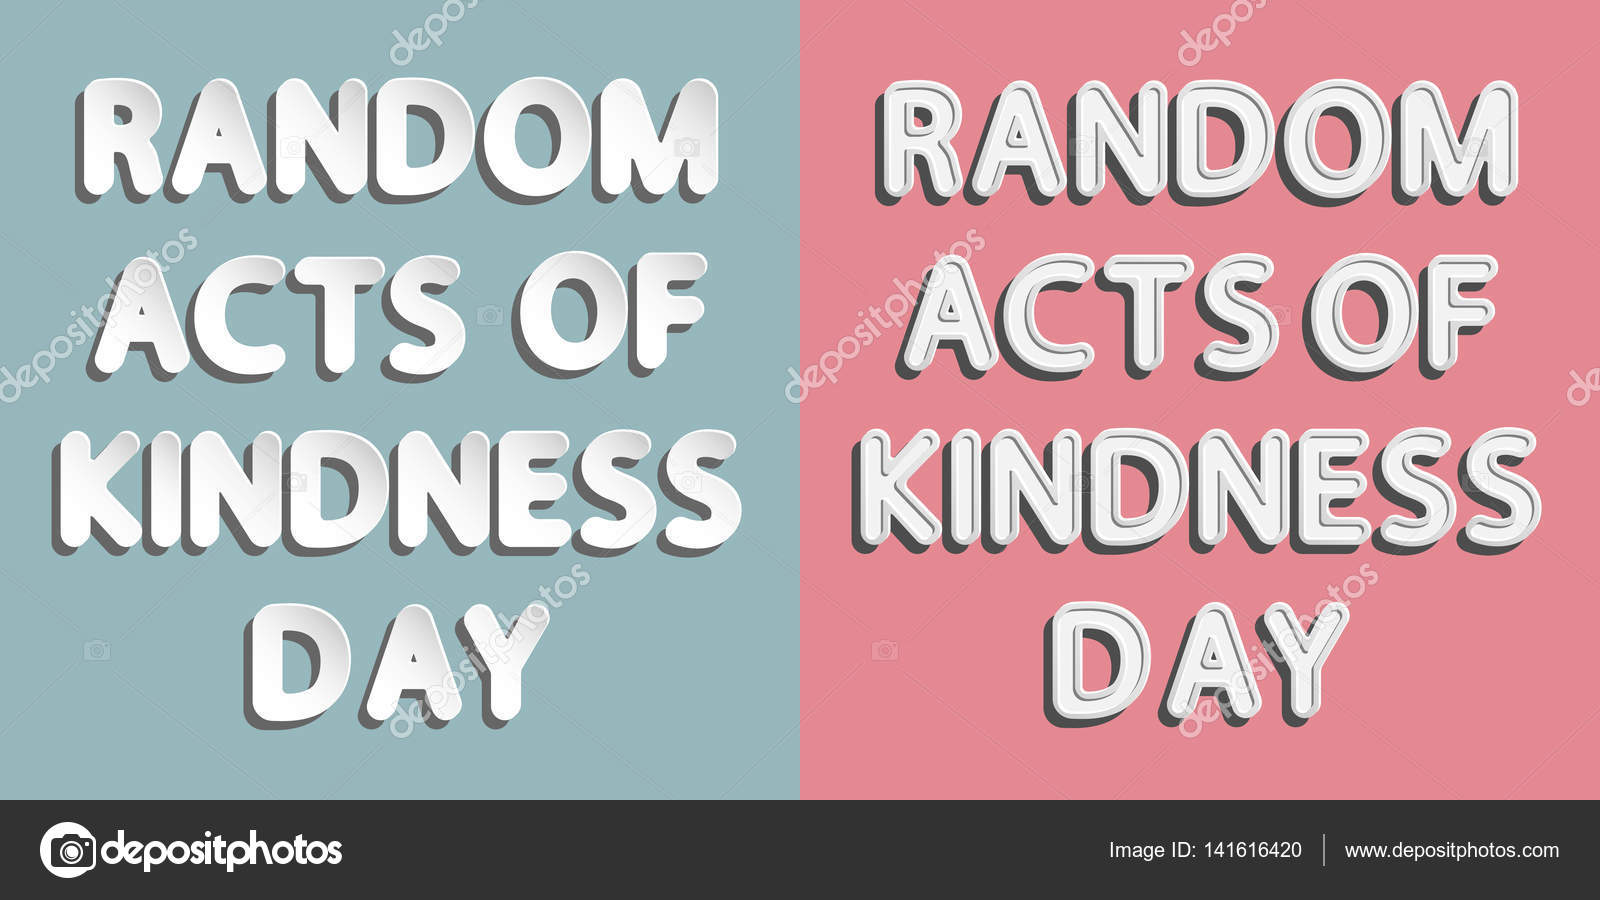 5 random acts of kindness Random acts of kindness at work ideas make lip balm for everyone i am a huge fan of natural, homemade beauty products and every time i'm making myself a batch of something i use regularly, i'll double or triple the batch and bring in the extras for my co-workers.